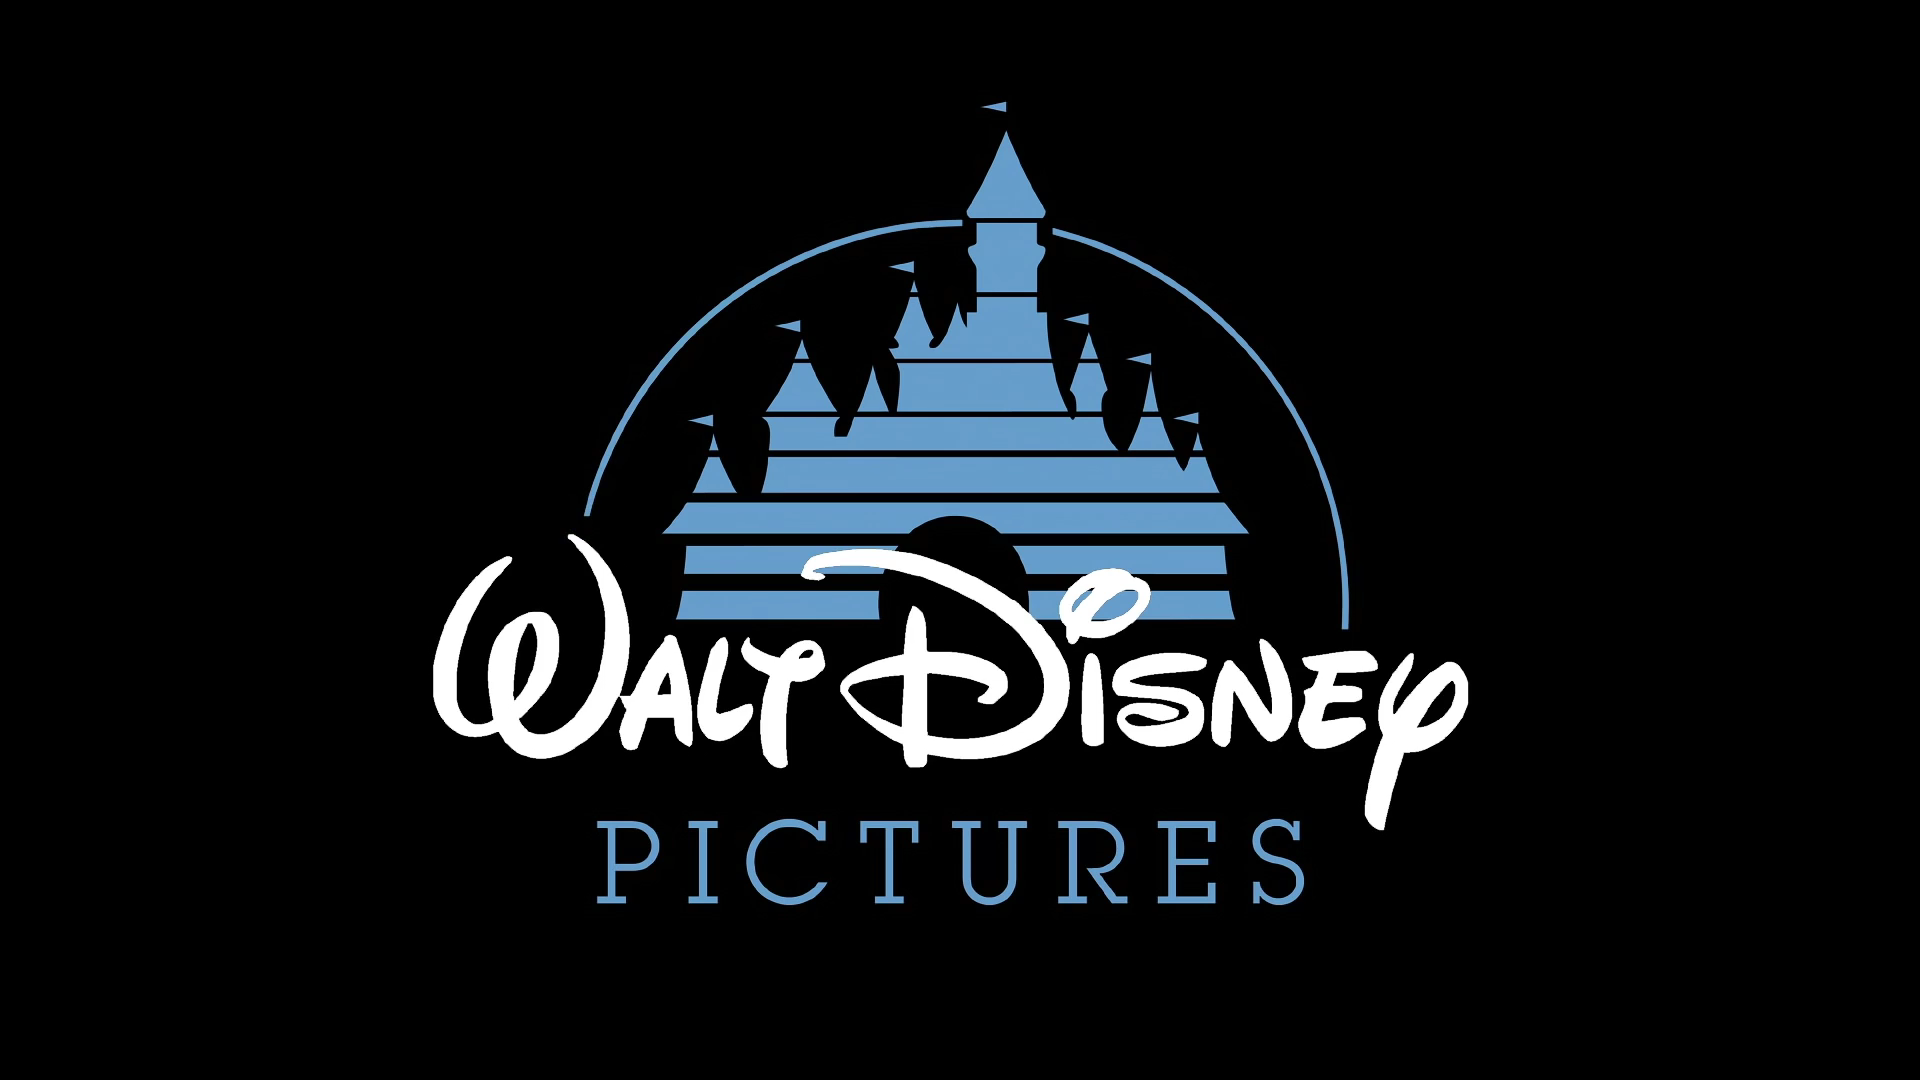 Image Walt Disney Pictures Exe Png Logopedia Fandom Powered By